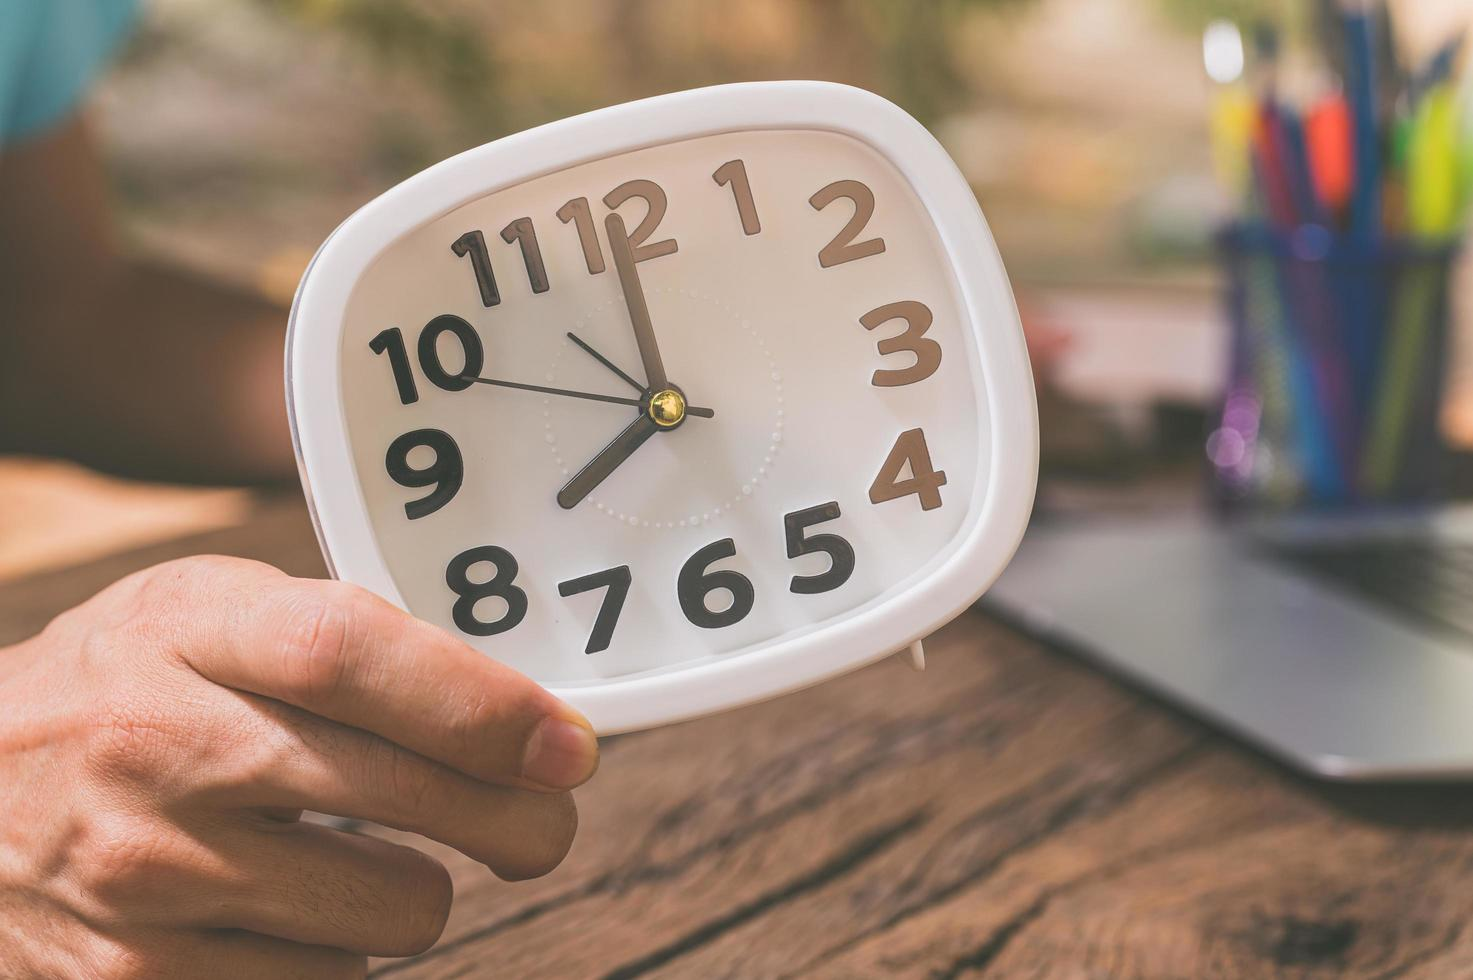 A person's hand holding a clock at a work desk photo